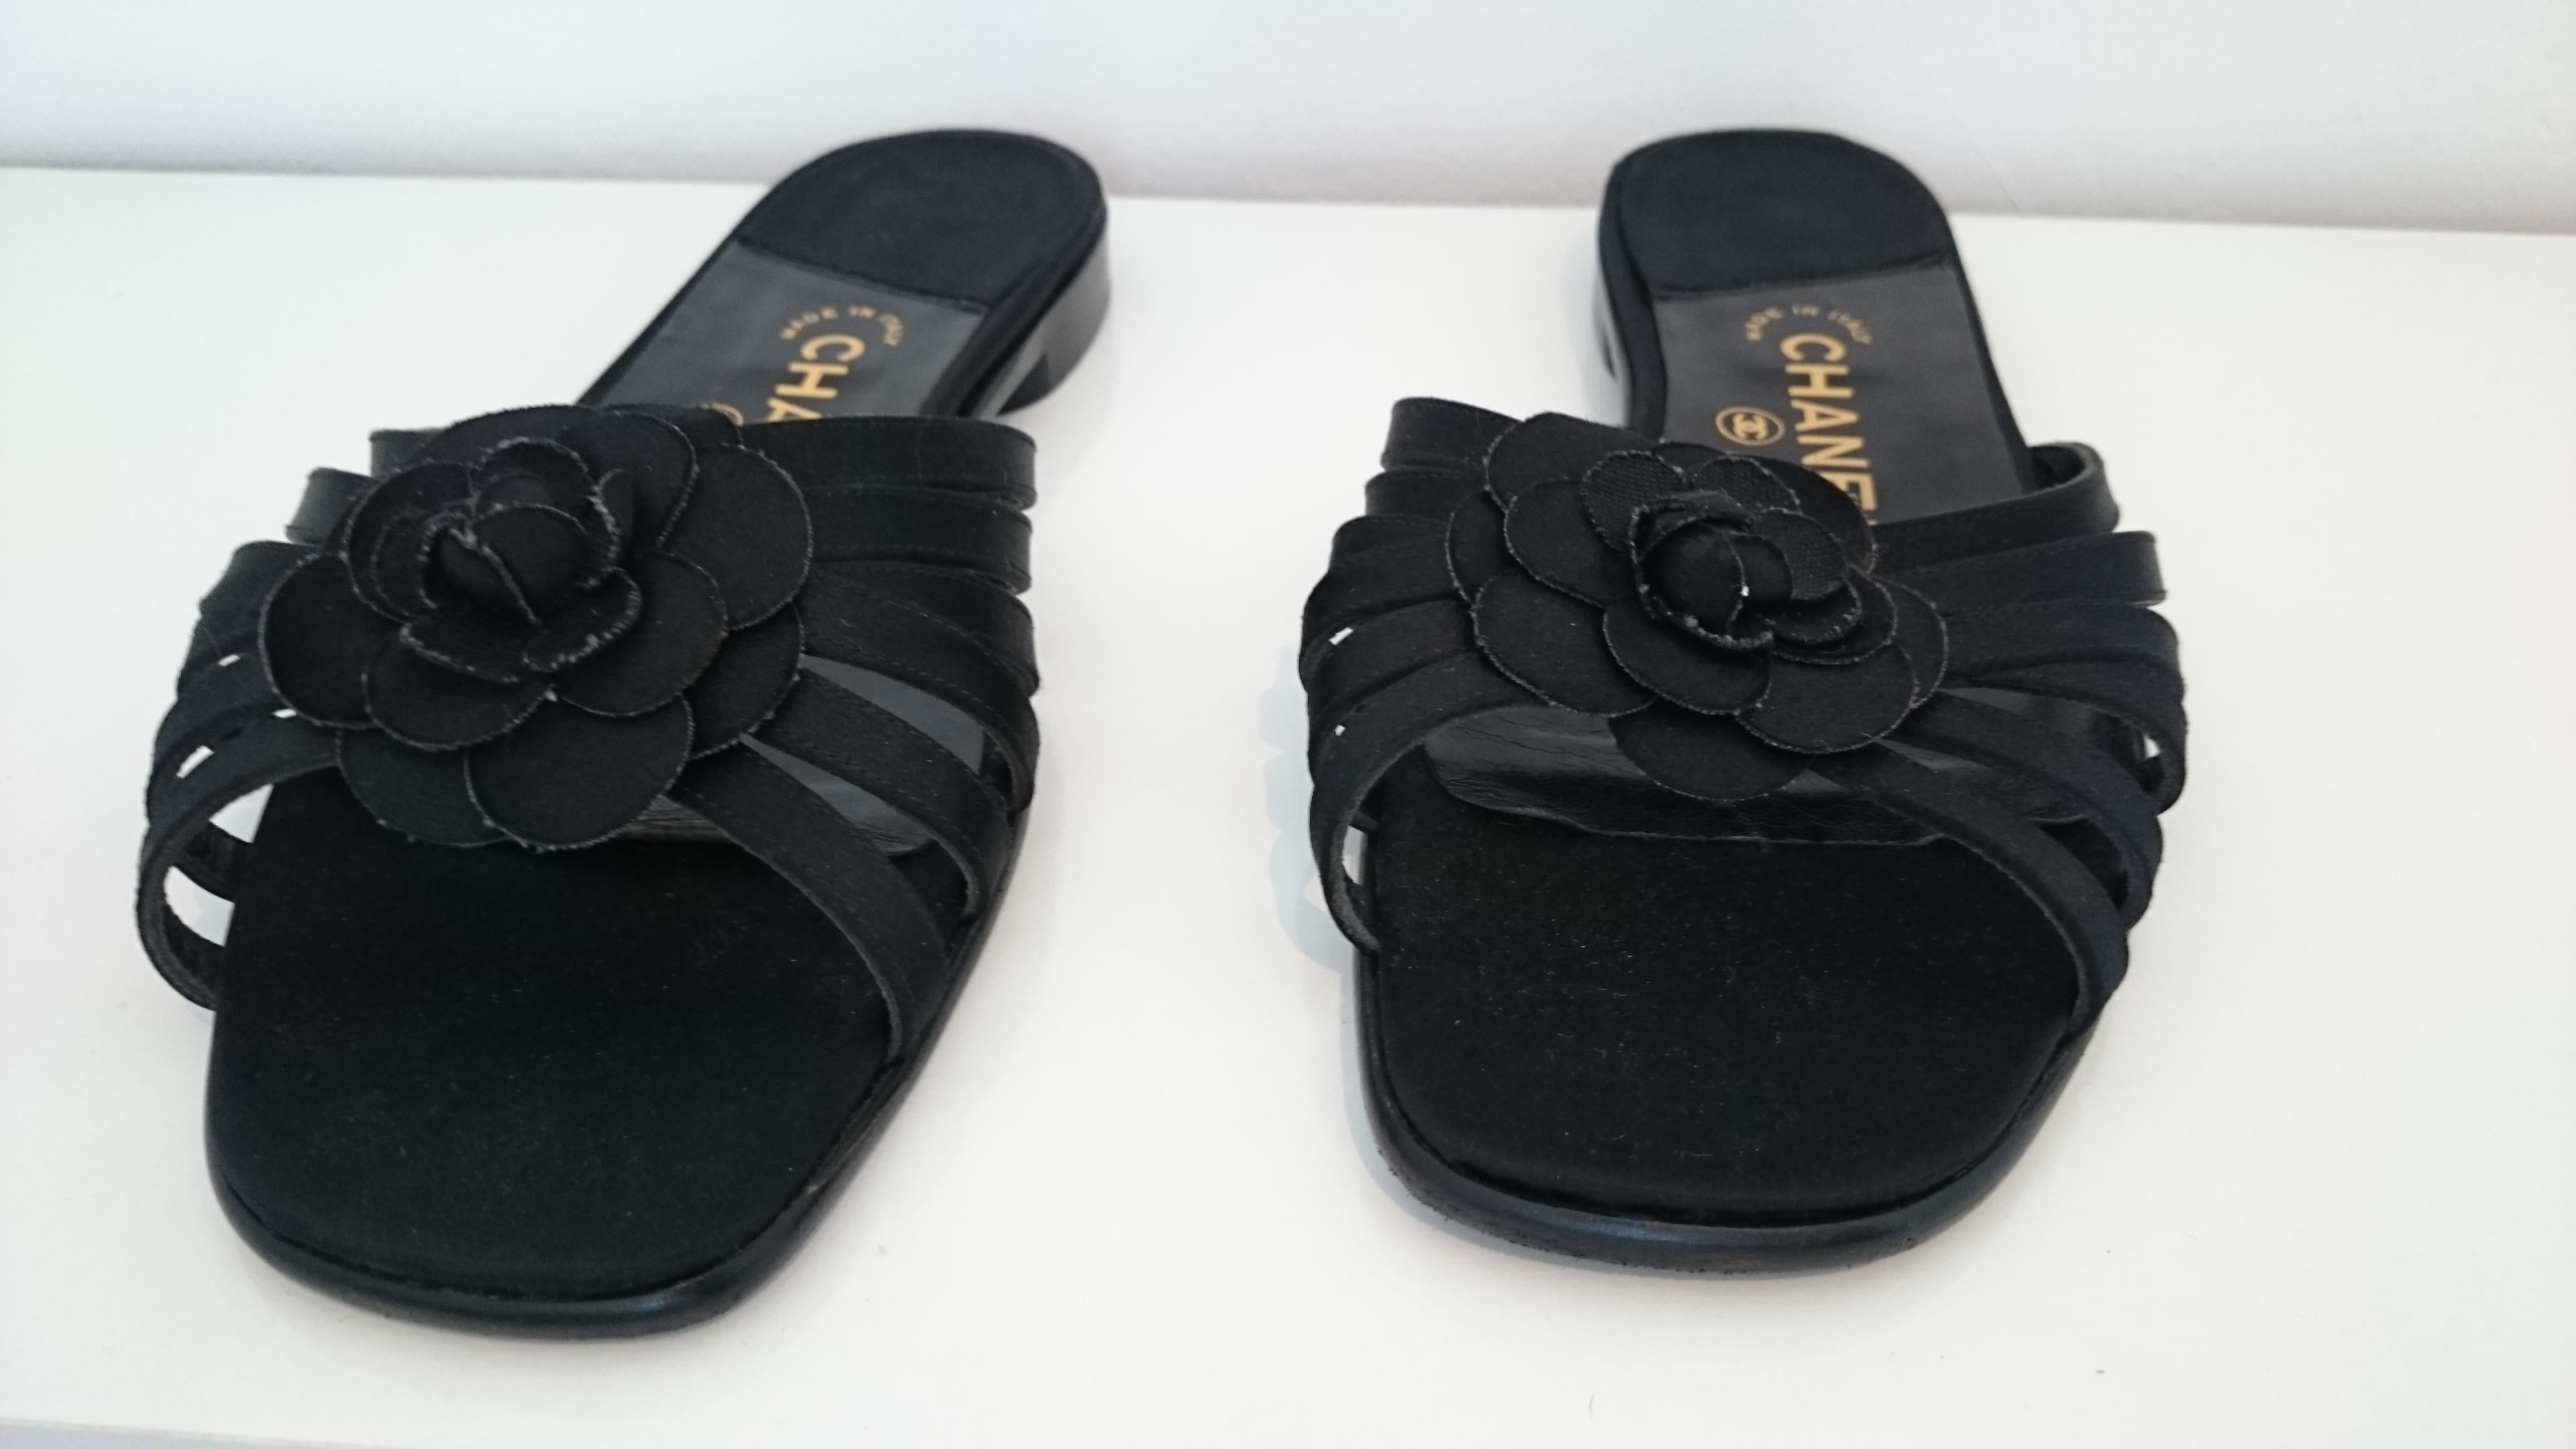 c21e21ac3465 Chanel Black Open Flowers Silk Stripes Sandals. Excellent conditions. Size  41 For Sale at 1stdibs